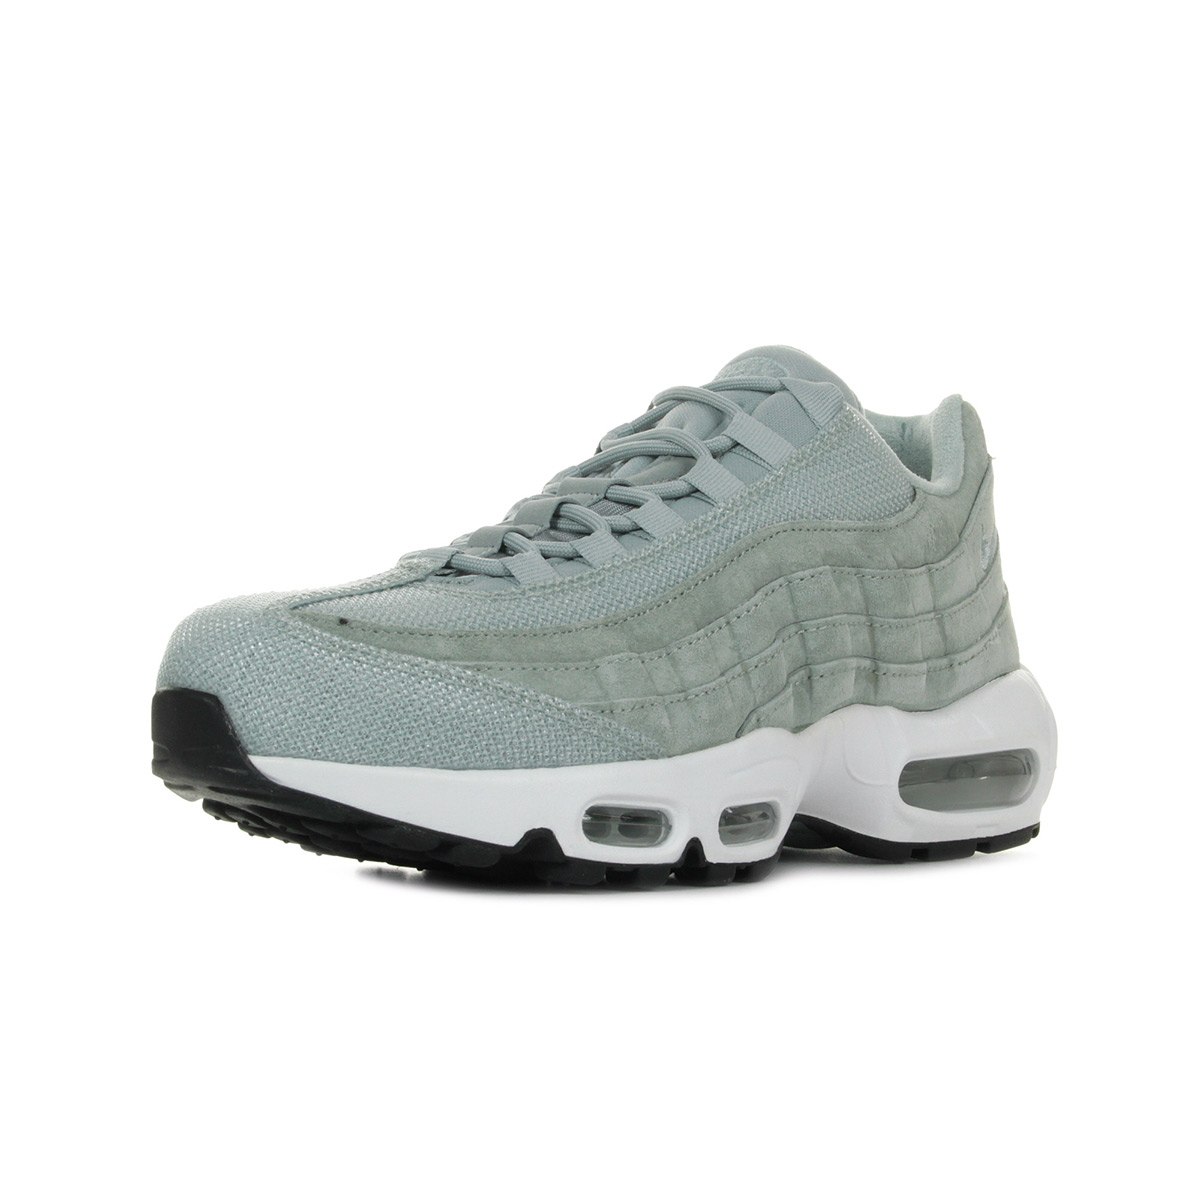 bab8970ca0d Chaussures Baskets Nike homme Air max 95 premium taille Gris Grise ...